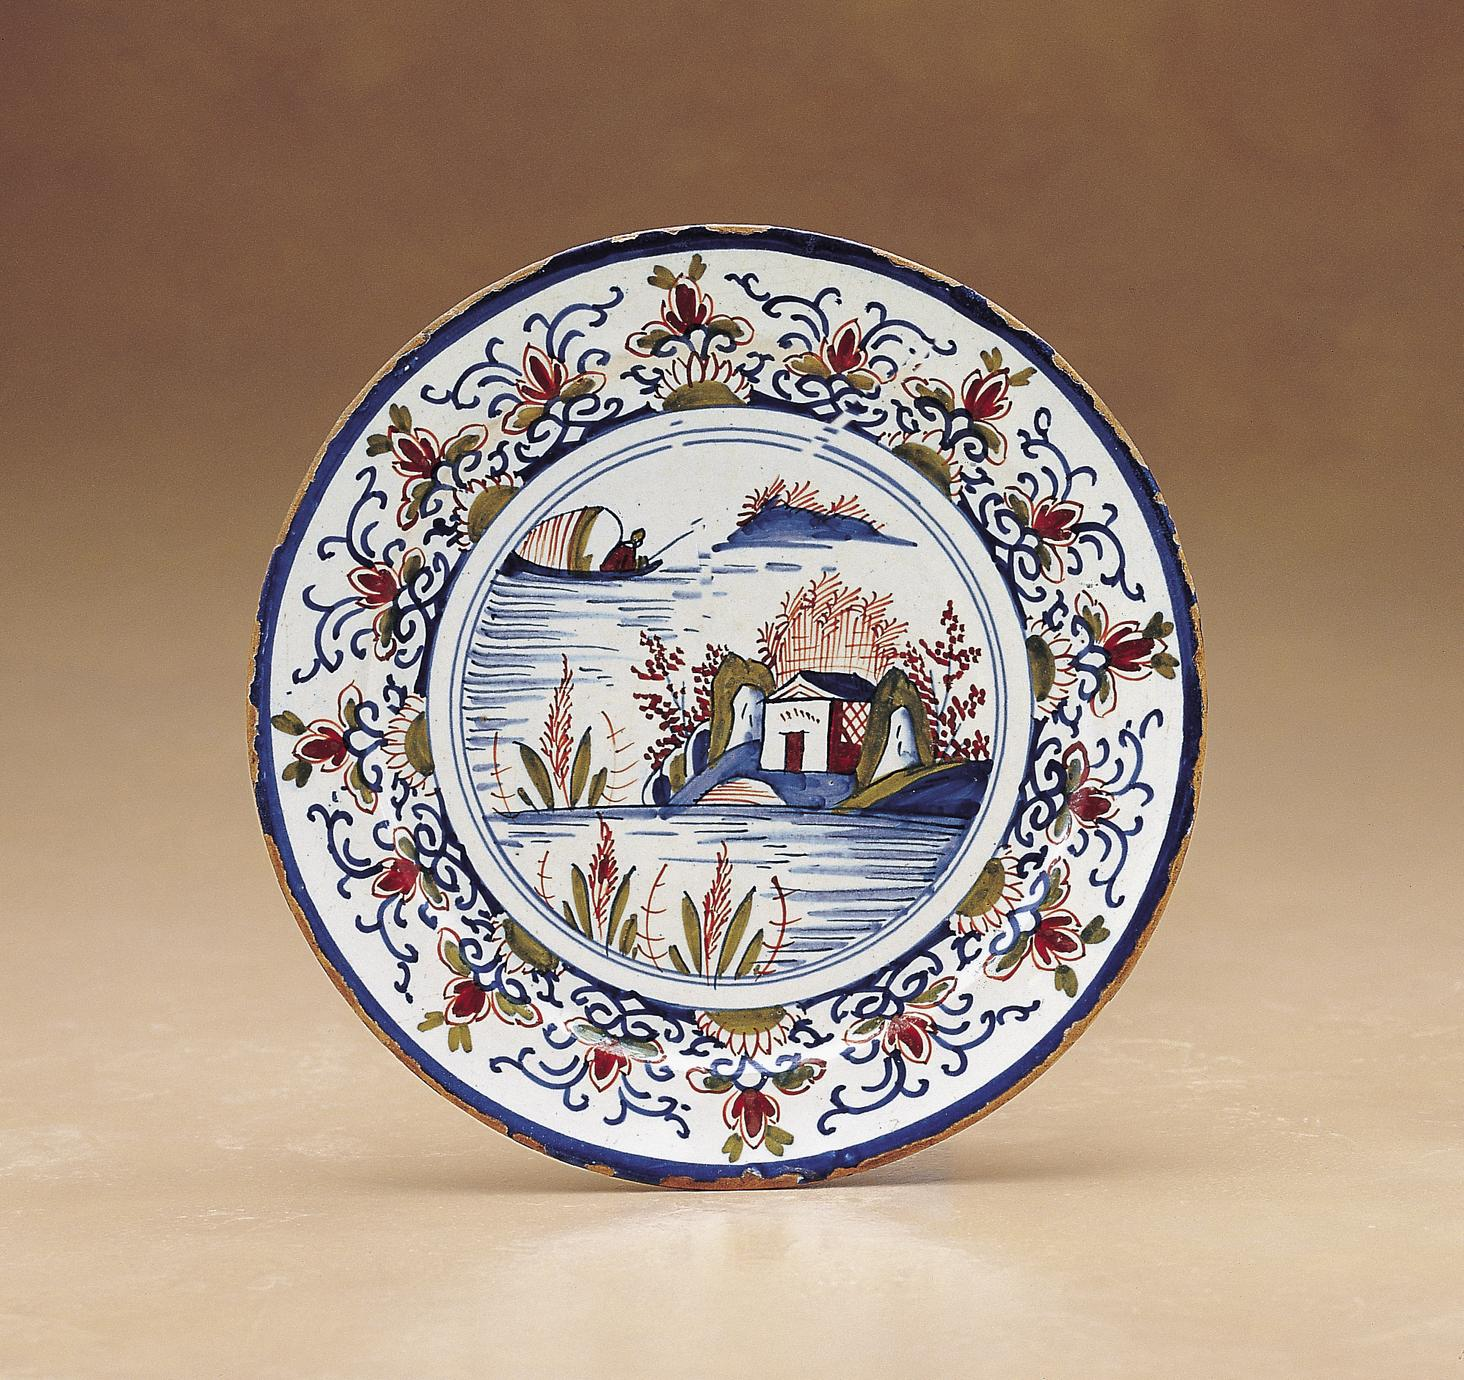 Plate (1 of 2)